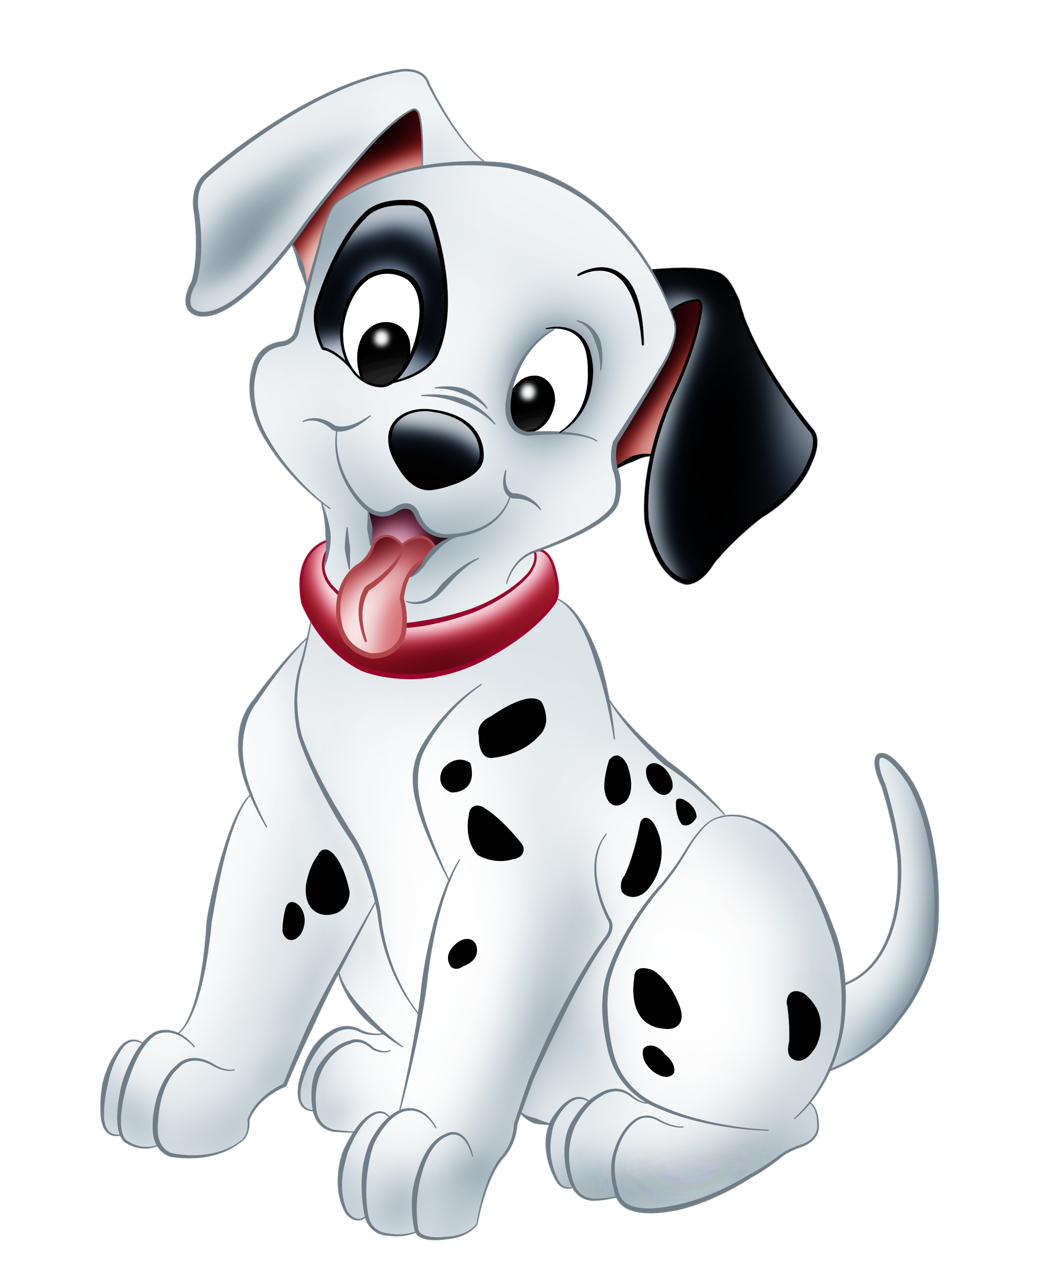 Dalmatians png picture cartoon. Clipart winter puppy